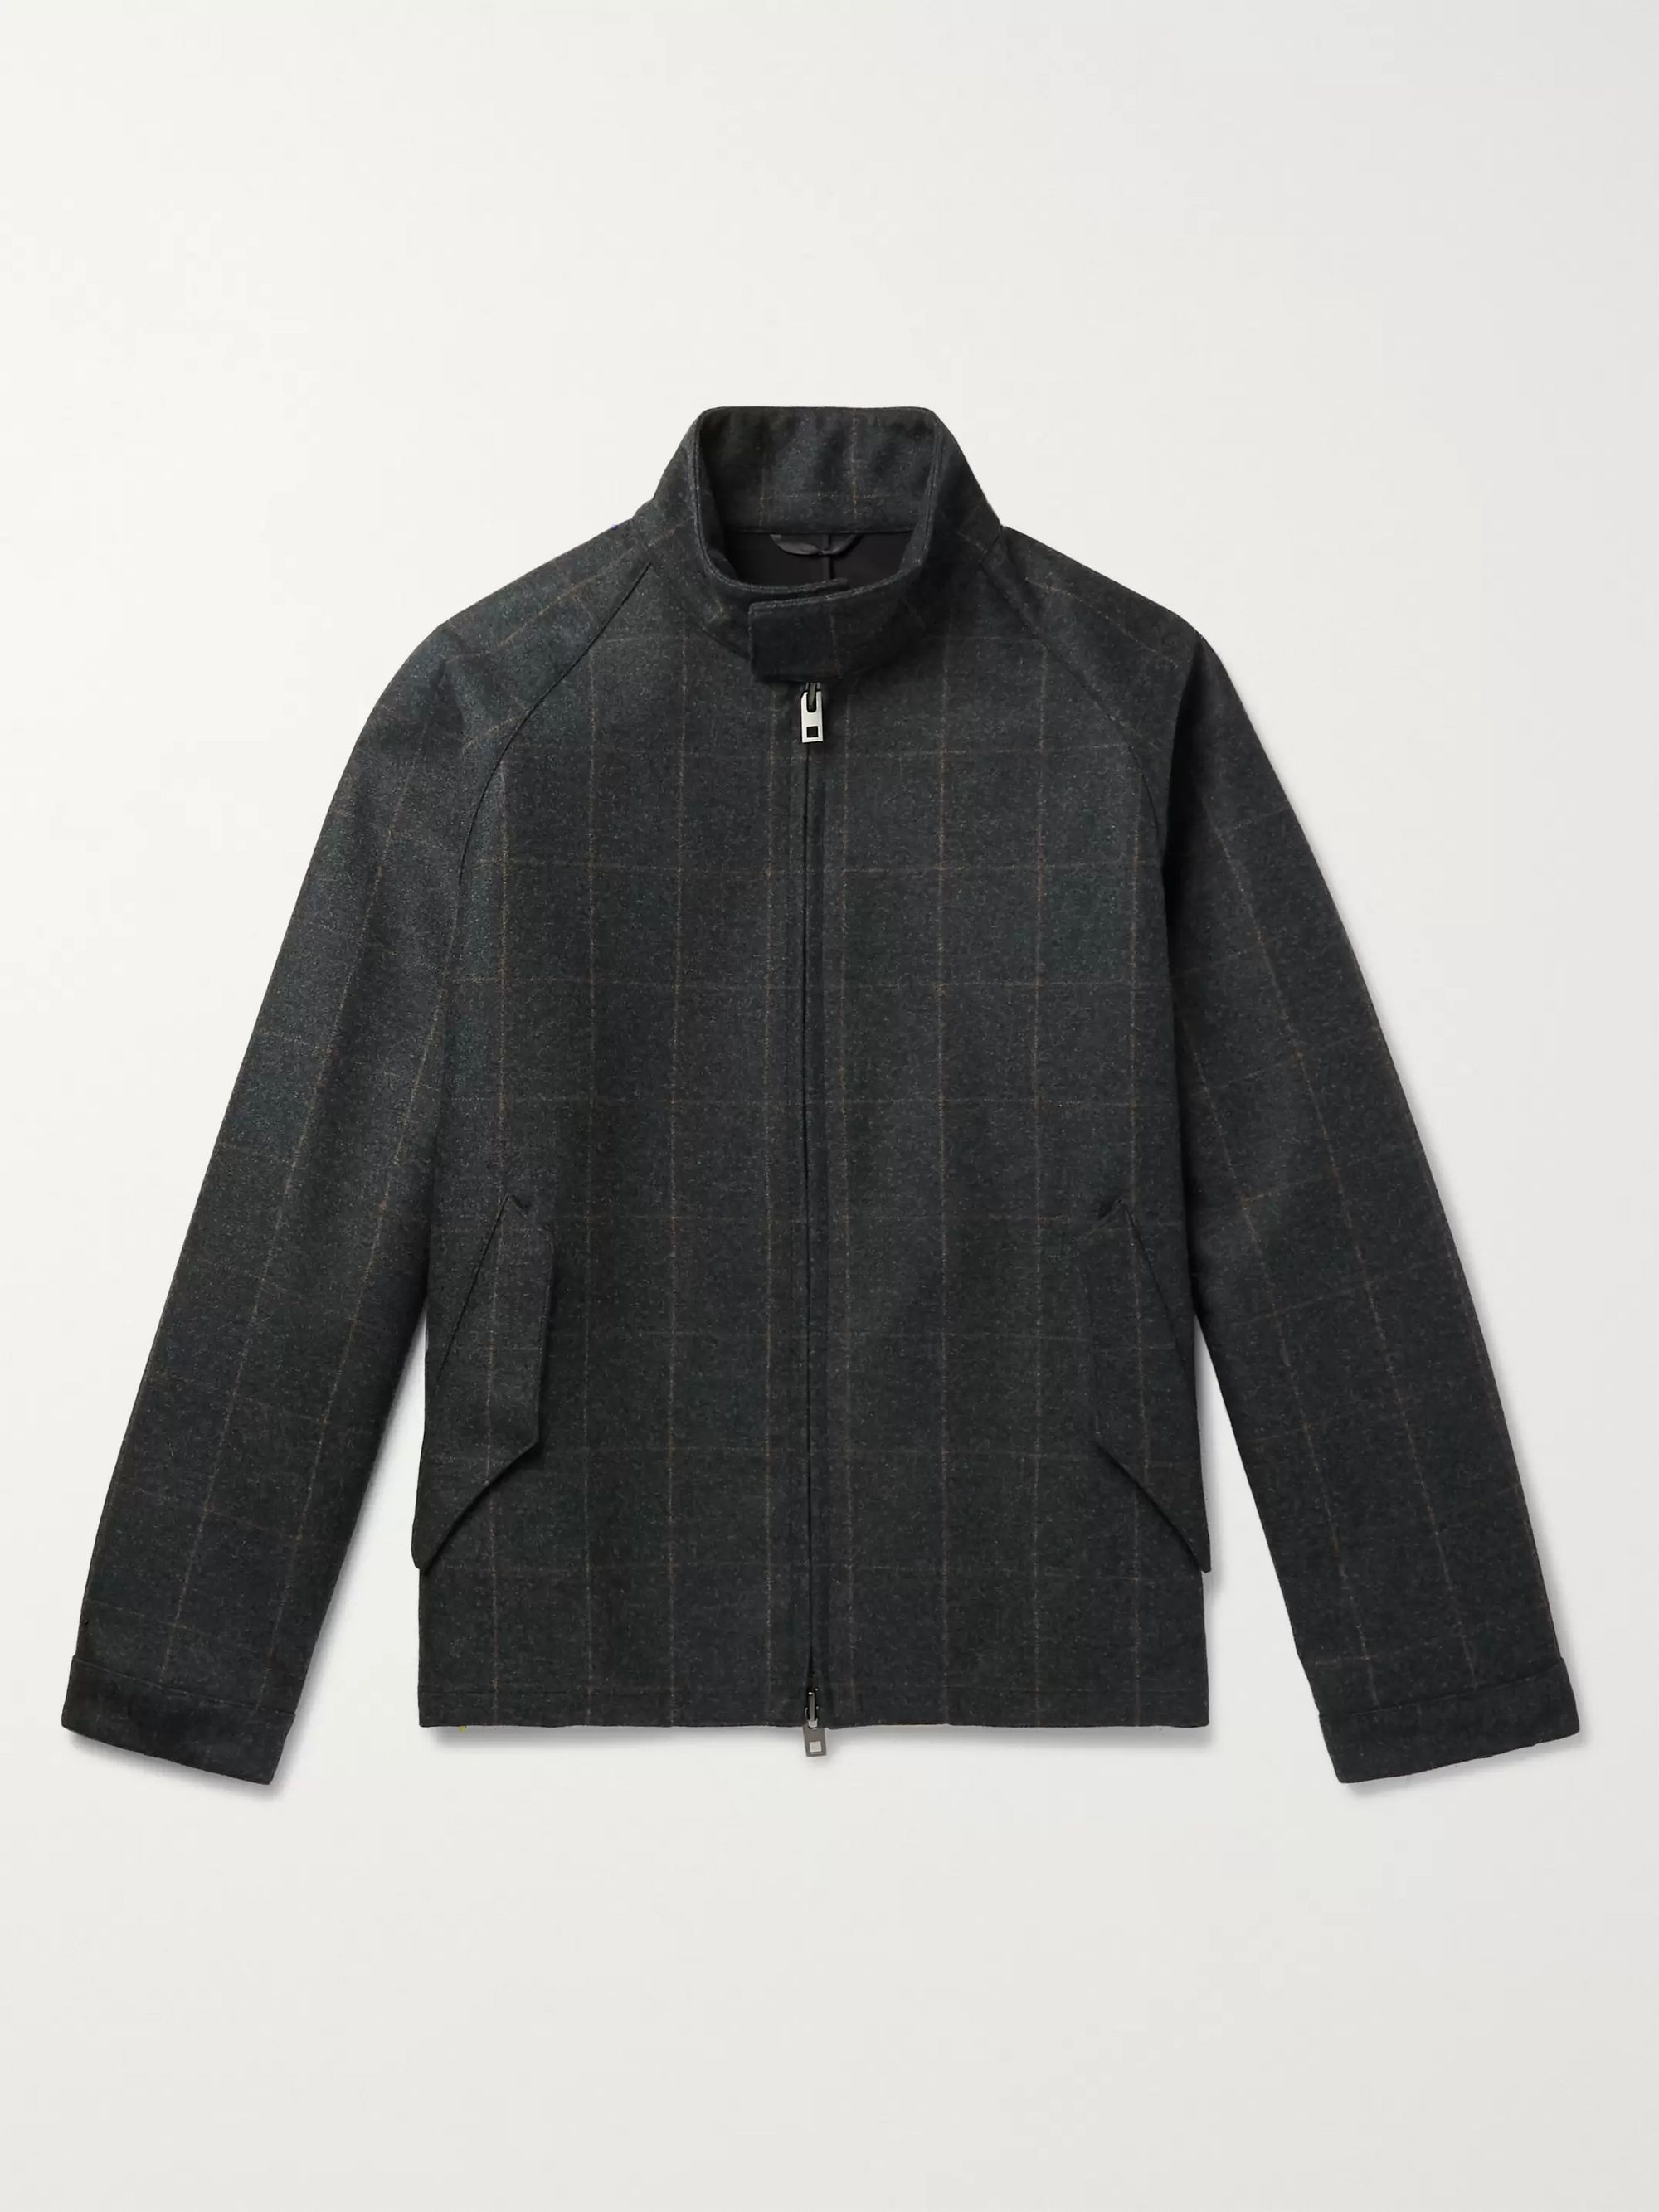 Camoshita + Vitale Barberis Canonico Checked Wool Bomber Jacket